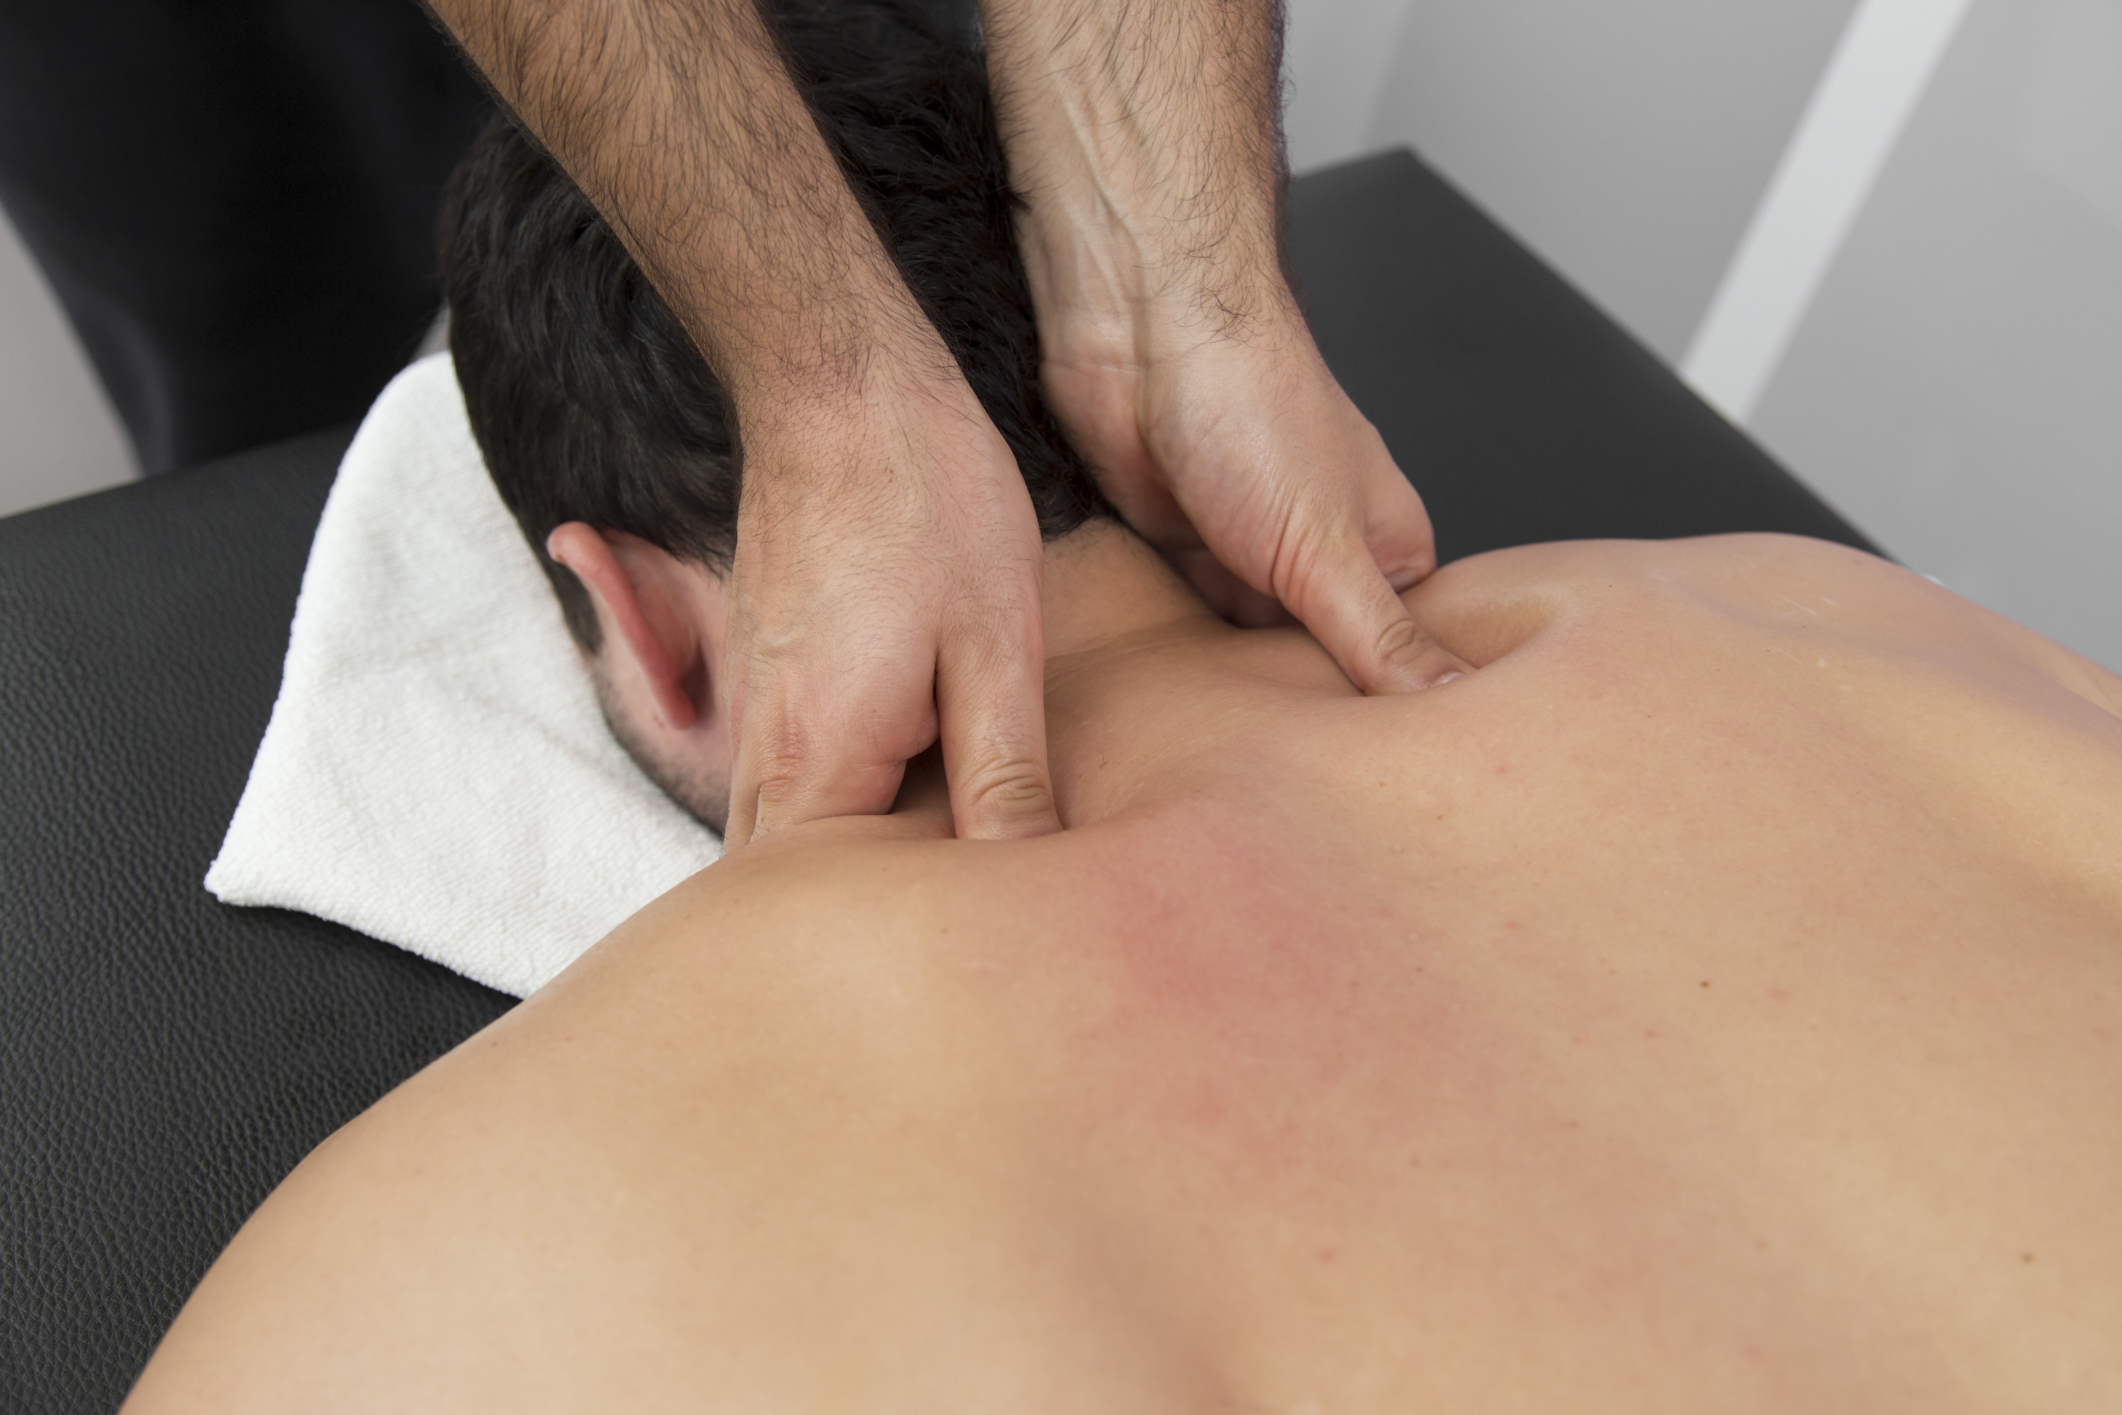 What Are the Signs & Symptoms of a C7 T1 Herniated Disk?